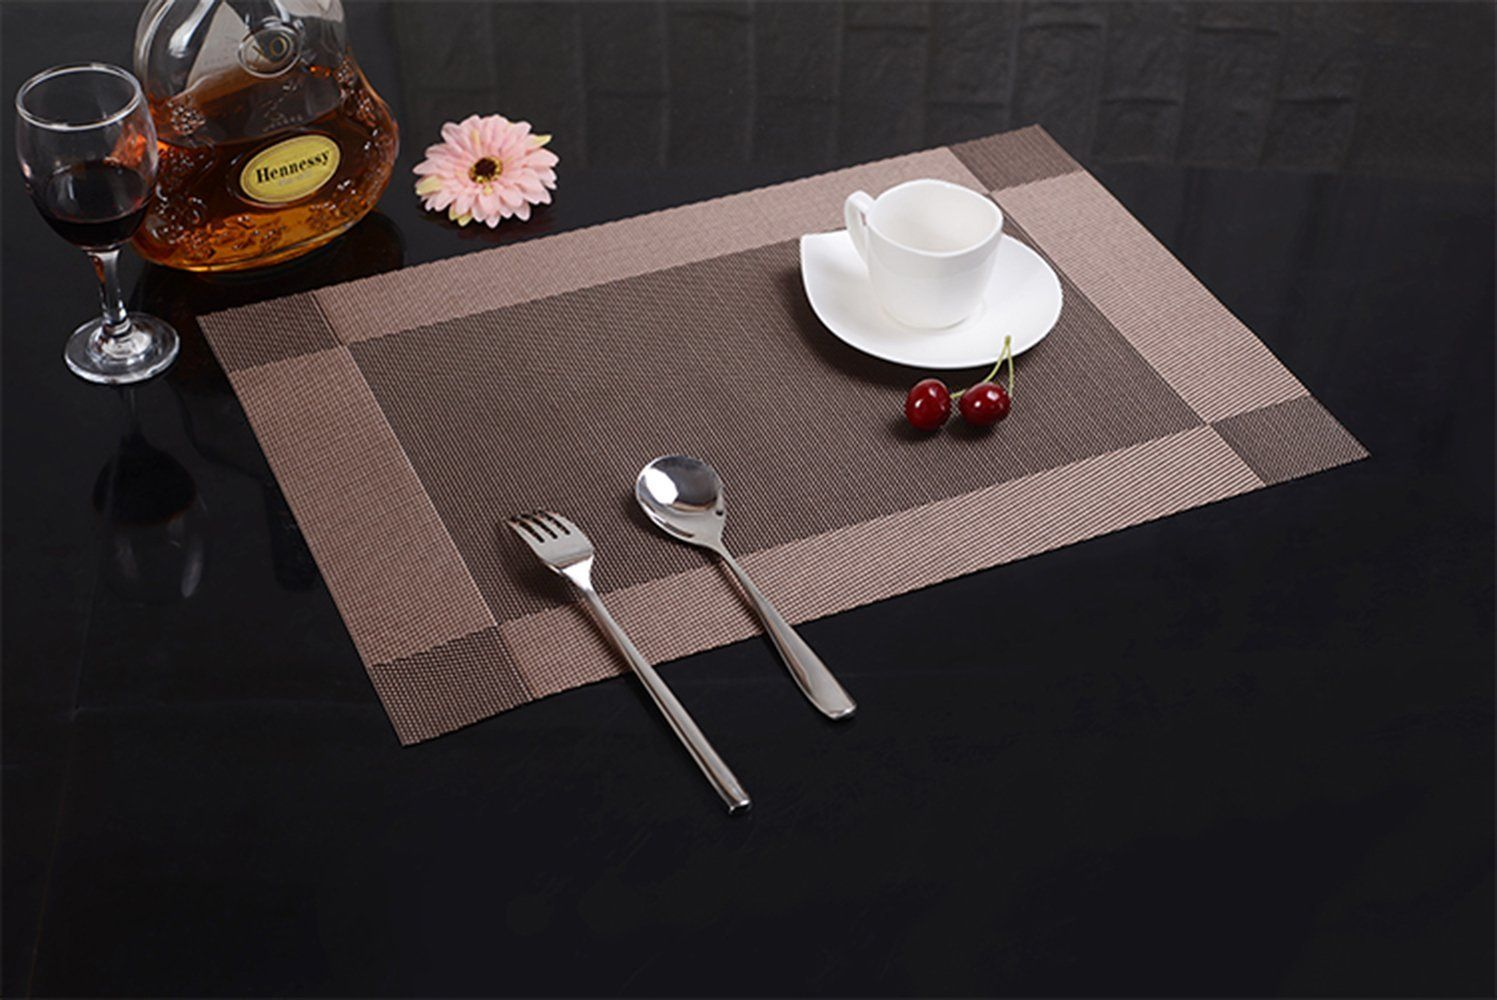 Wimaha Place Mats Set Of 6 Wipe Clean Placemats For Dining Table For  Kids,brown